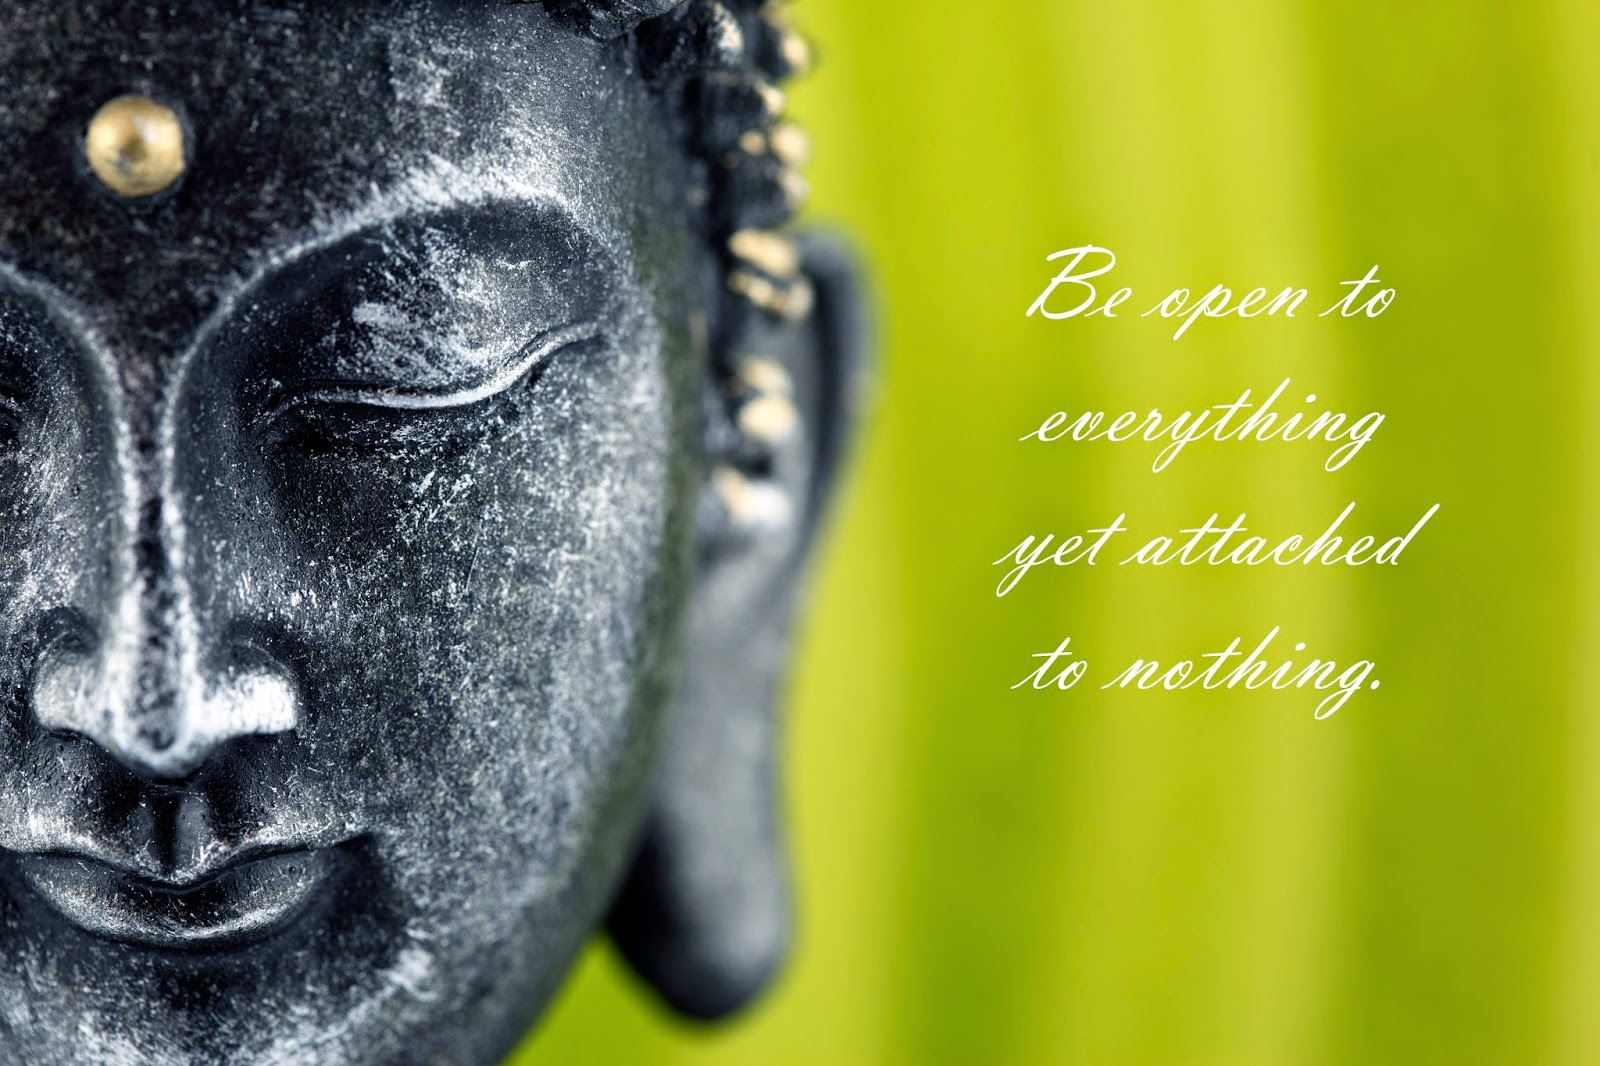 Best Buddha Quotes Buddha Wallpapers With Quotes On Life And Happiness Hd Pictures